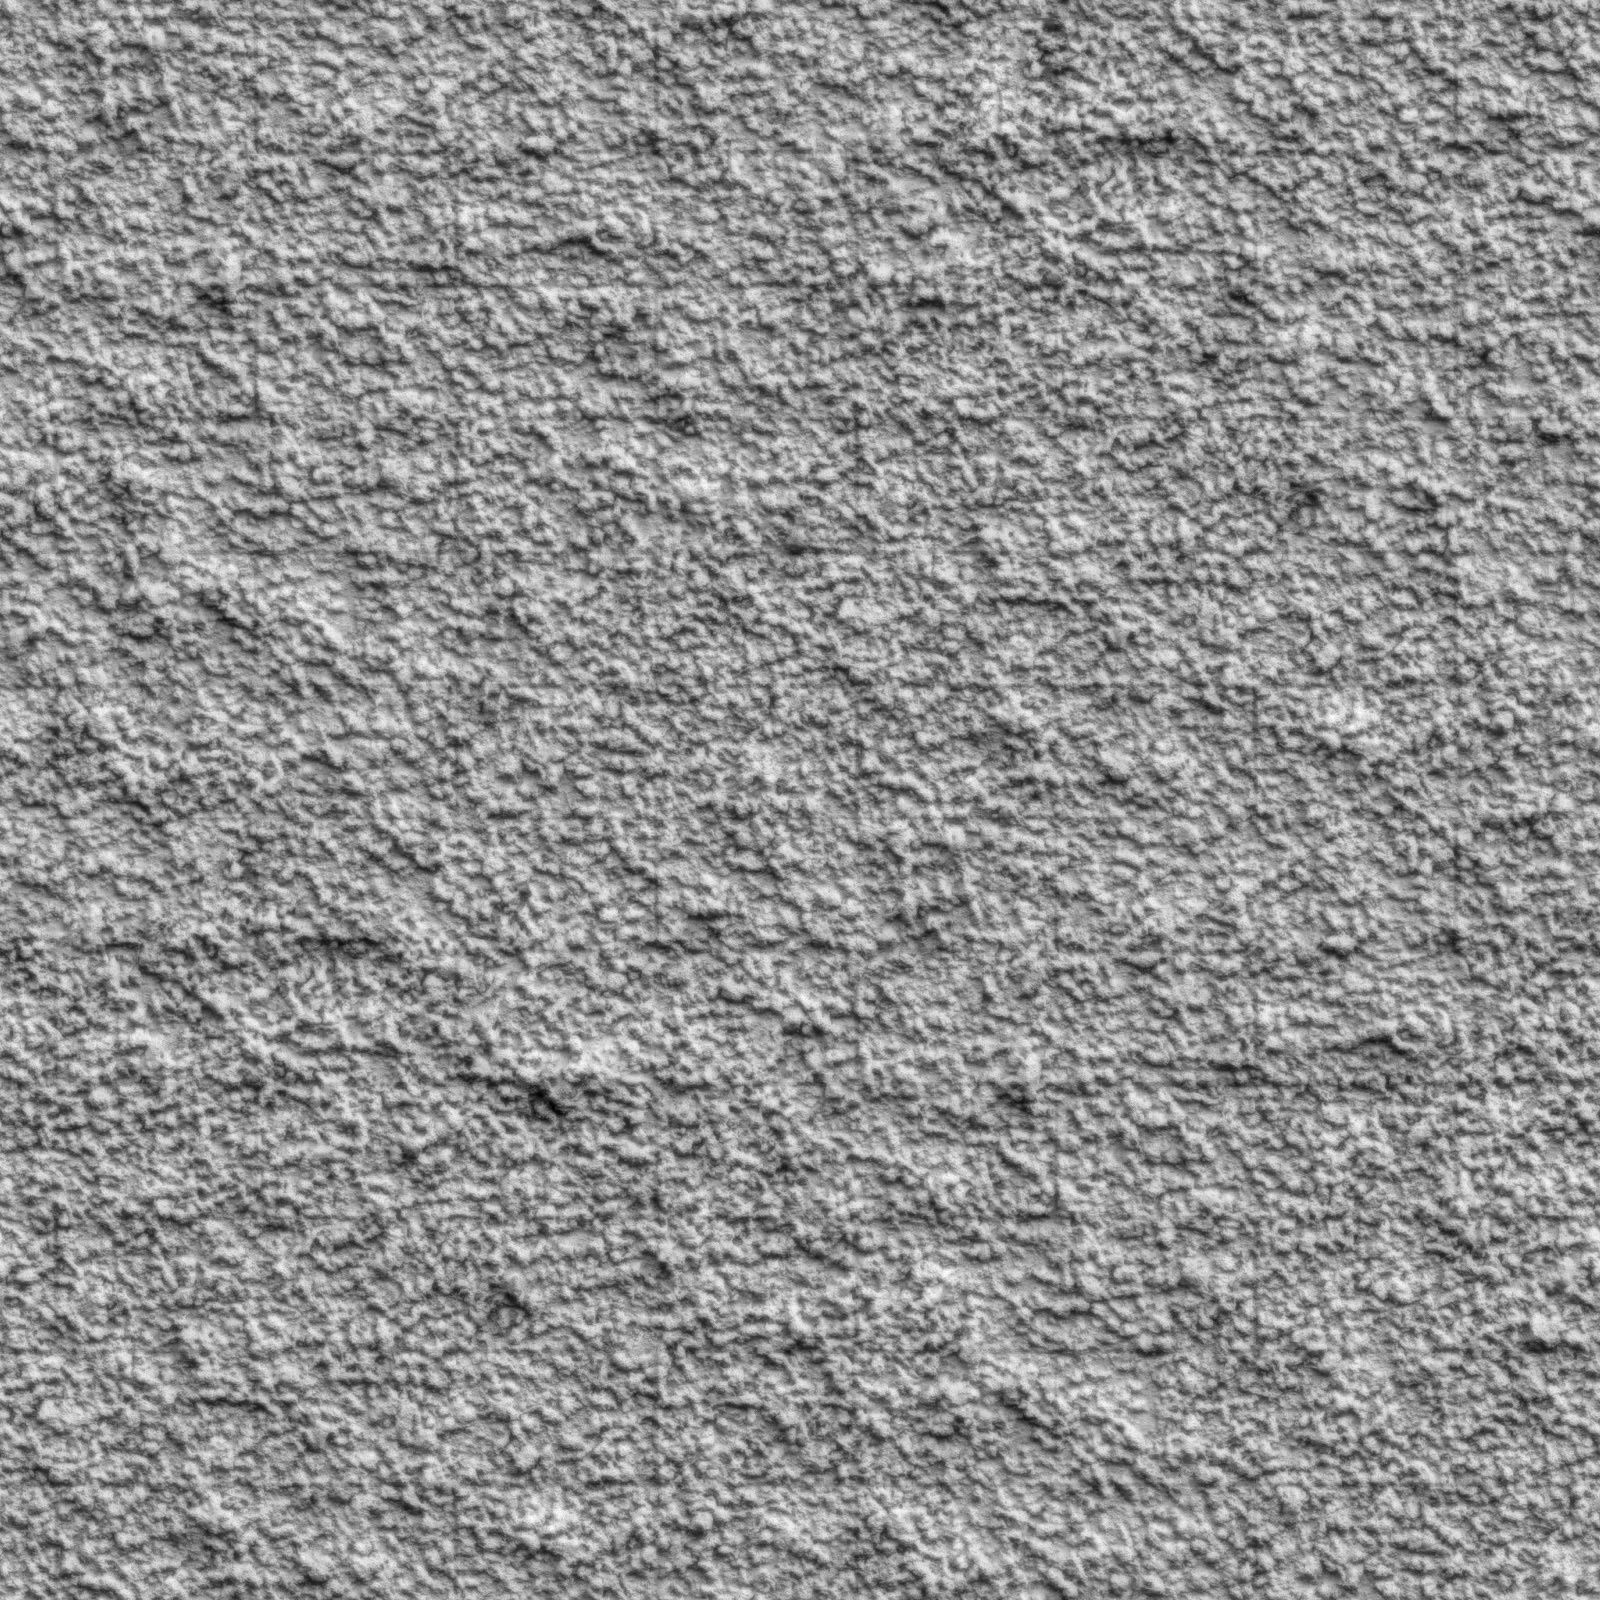 Contrast Between Stone And Plaster Finish: Free Seamless Textures, Tileable Textures And Maps